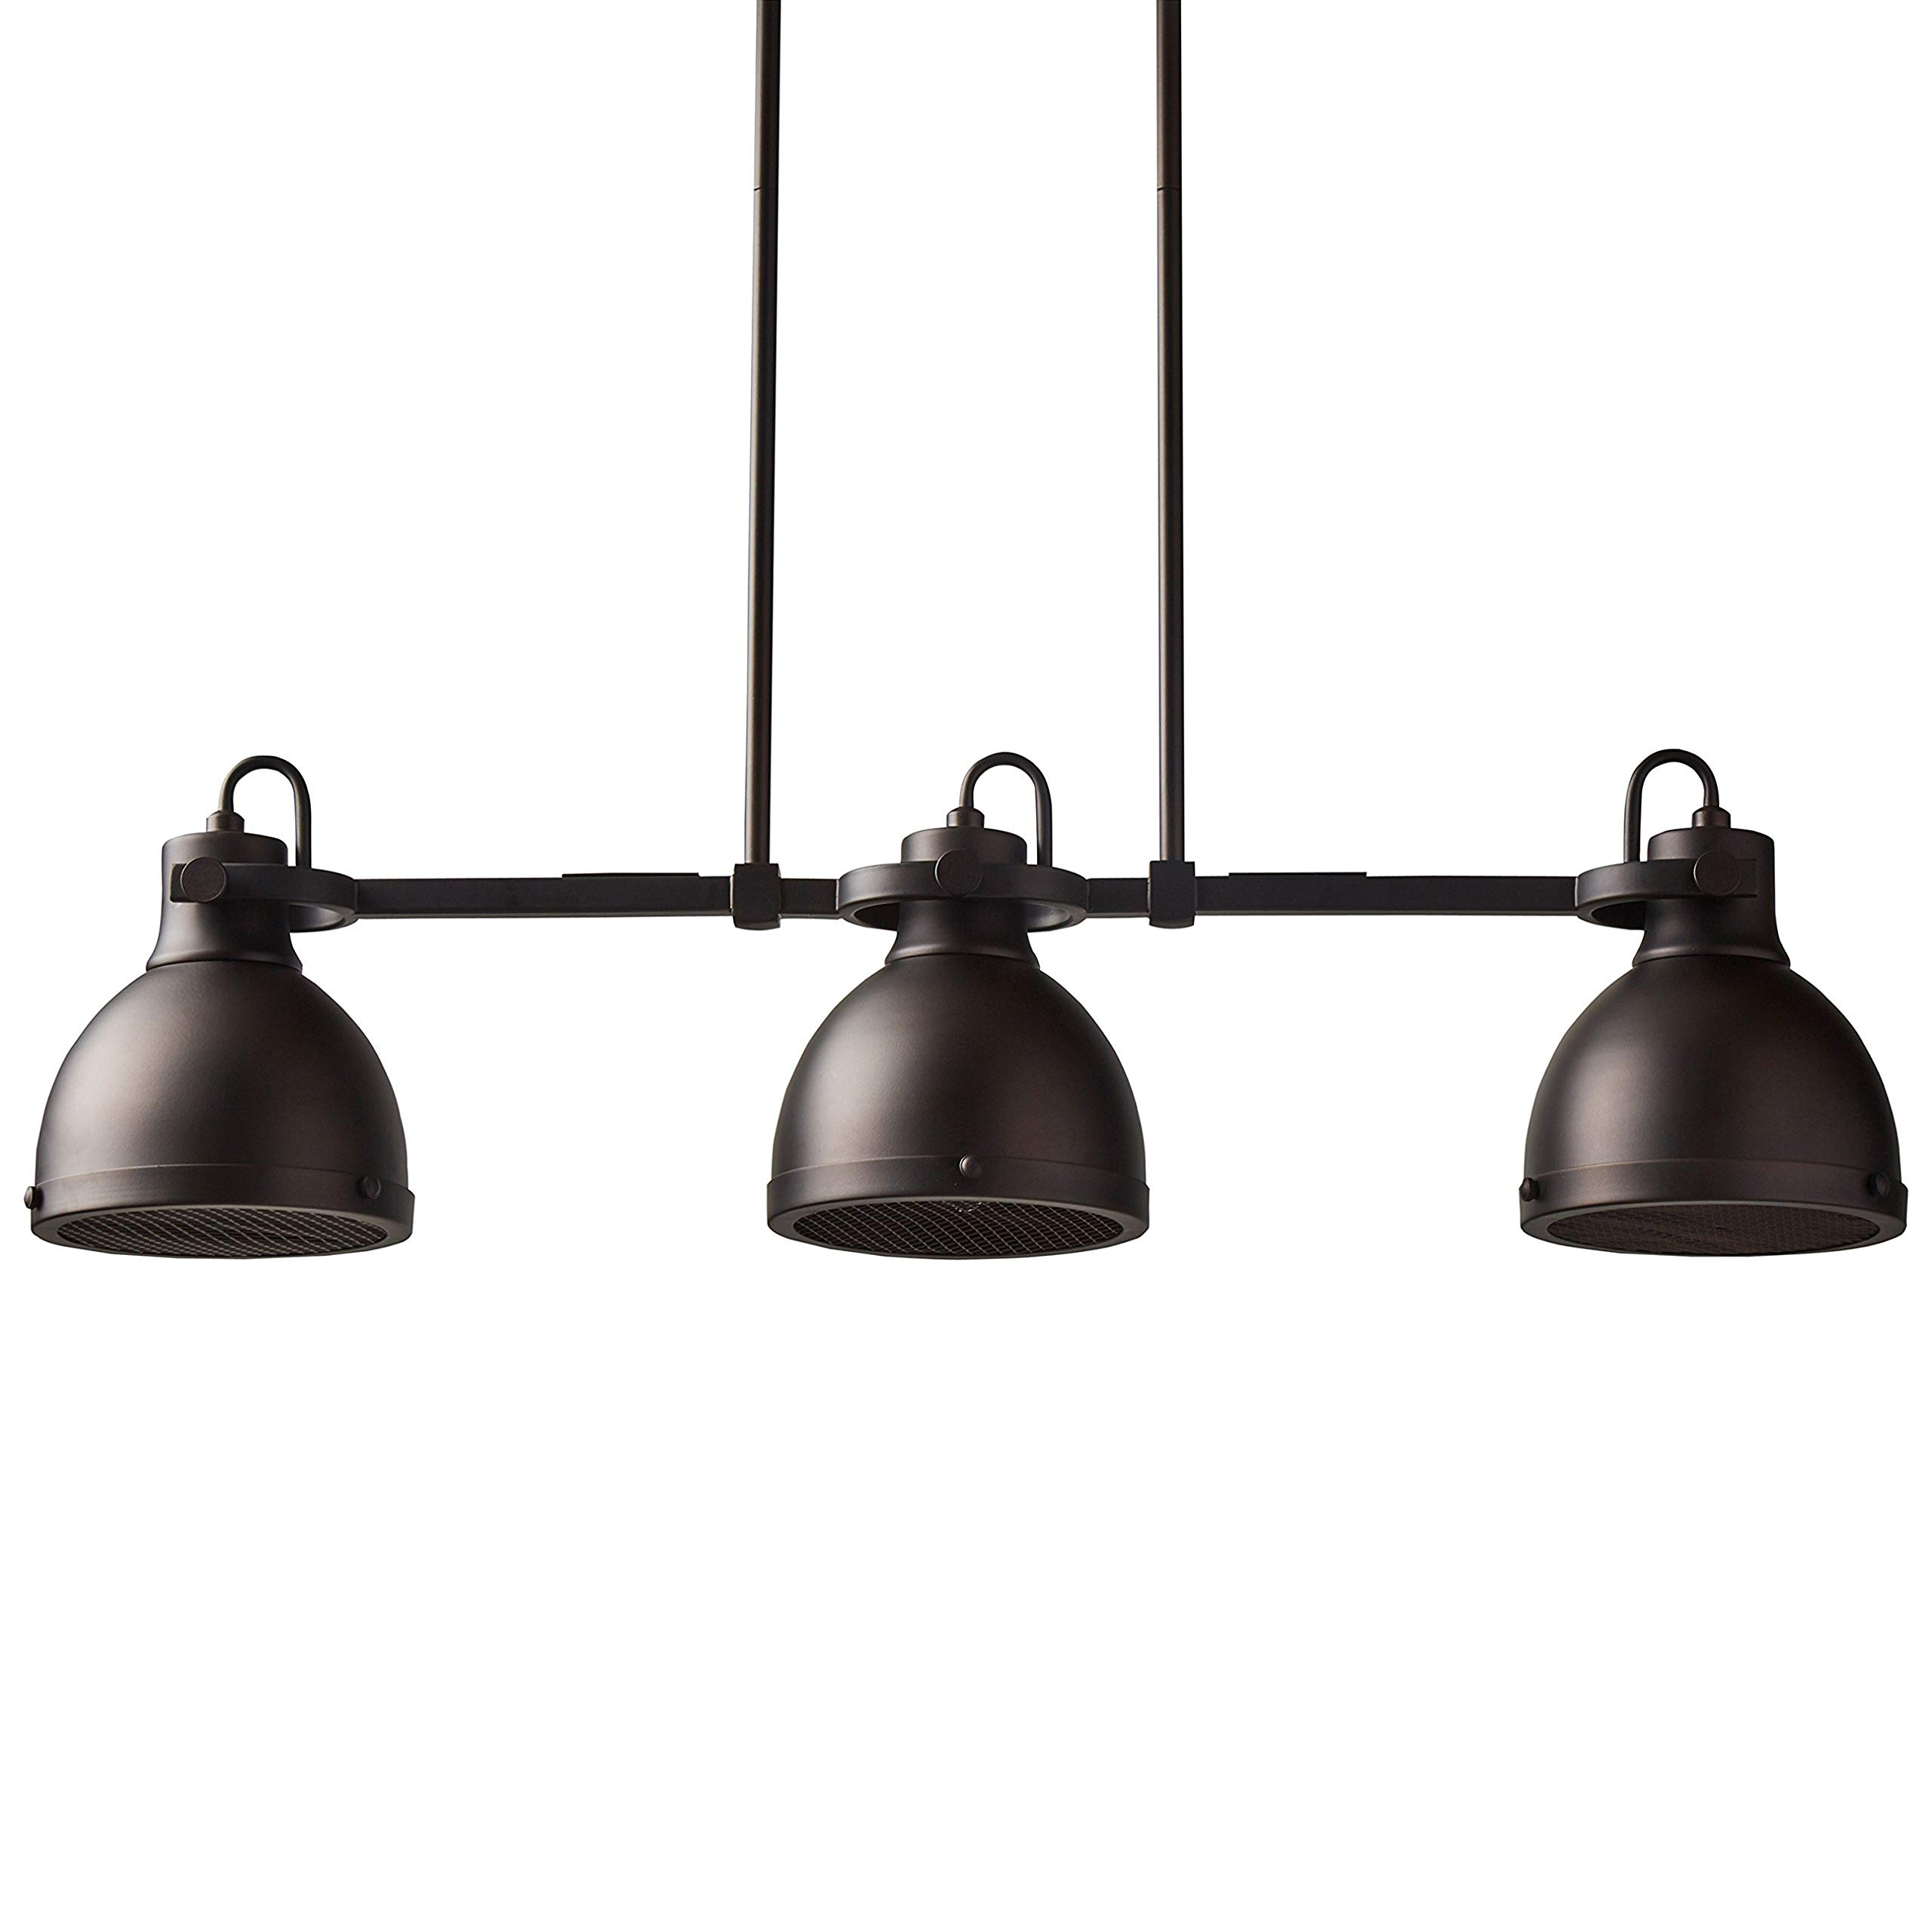 Stone & Beam Emmons Triple Pendant With Bulbs, 8.25''-56.25''H, Oil-Rubbed Bronze